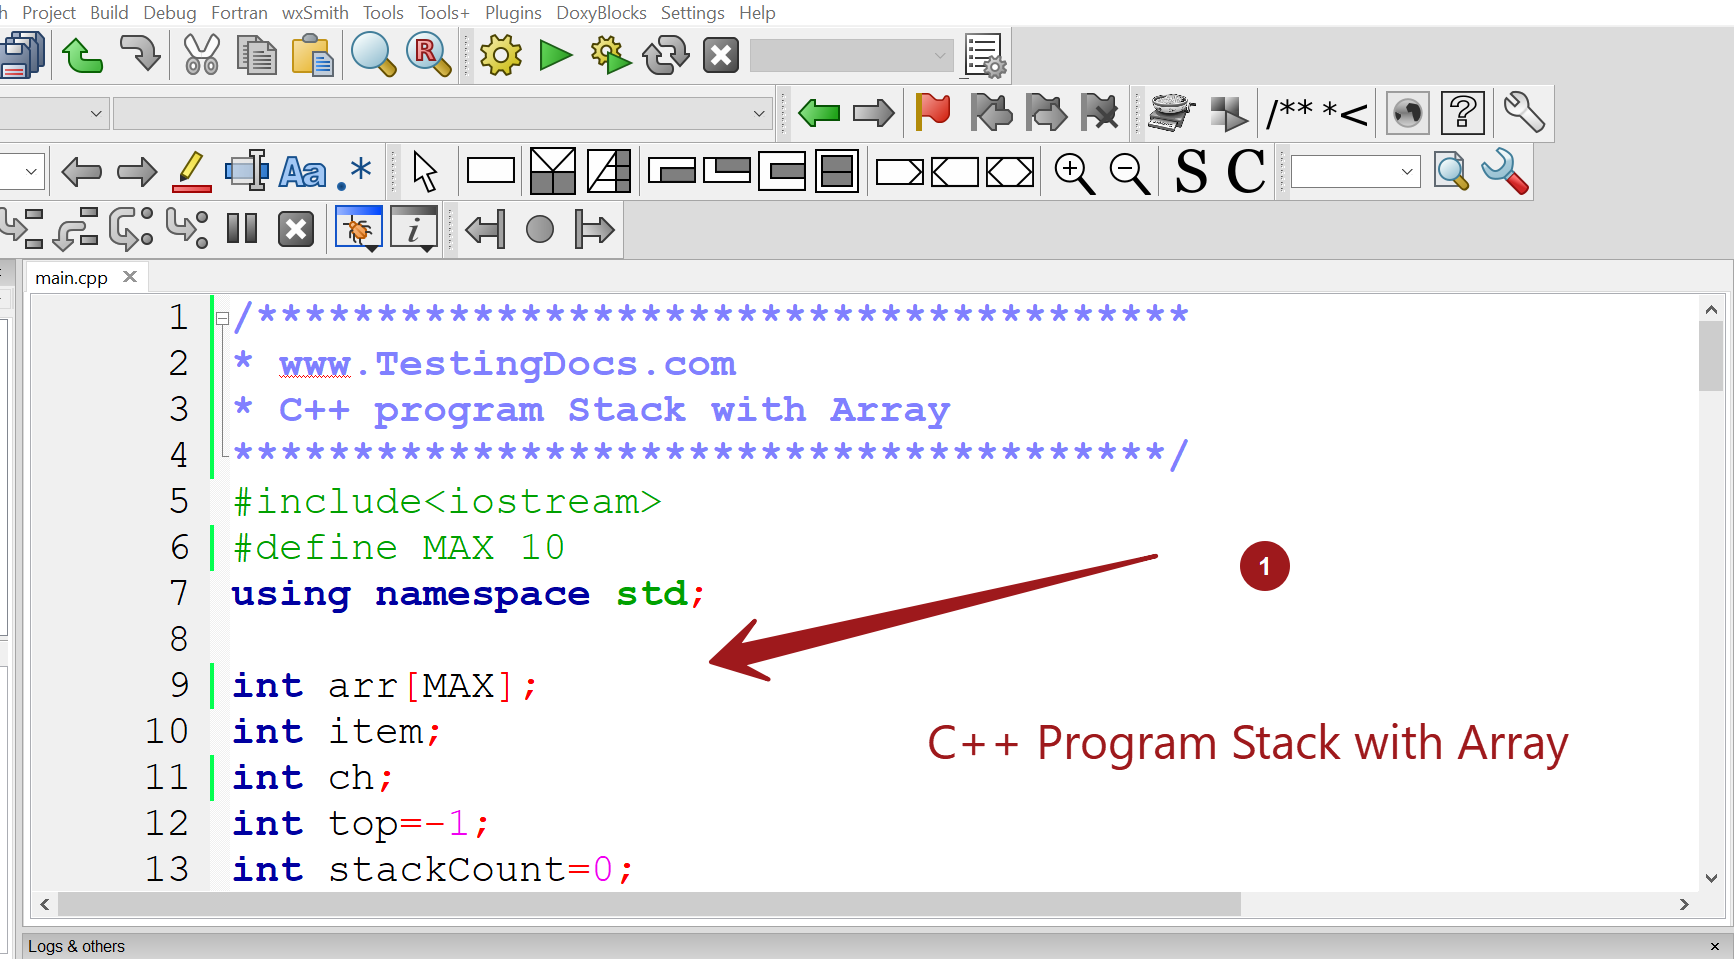 C++ Program Stack with Array